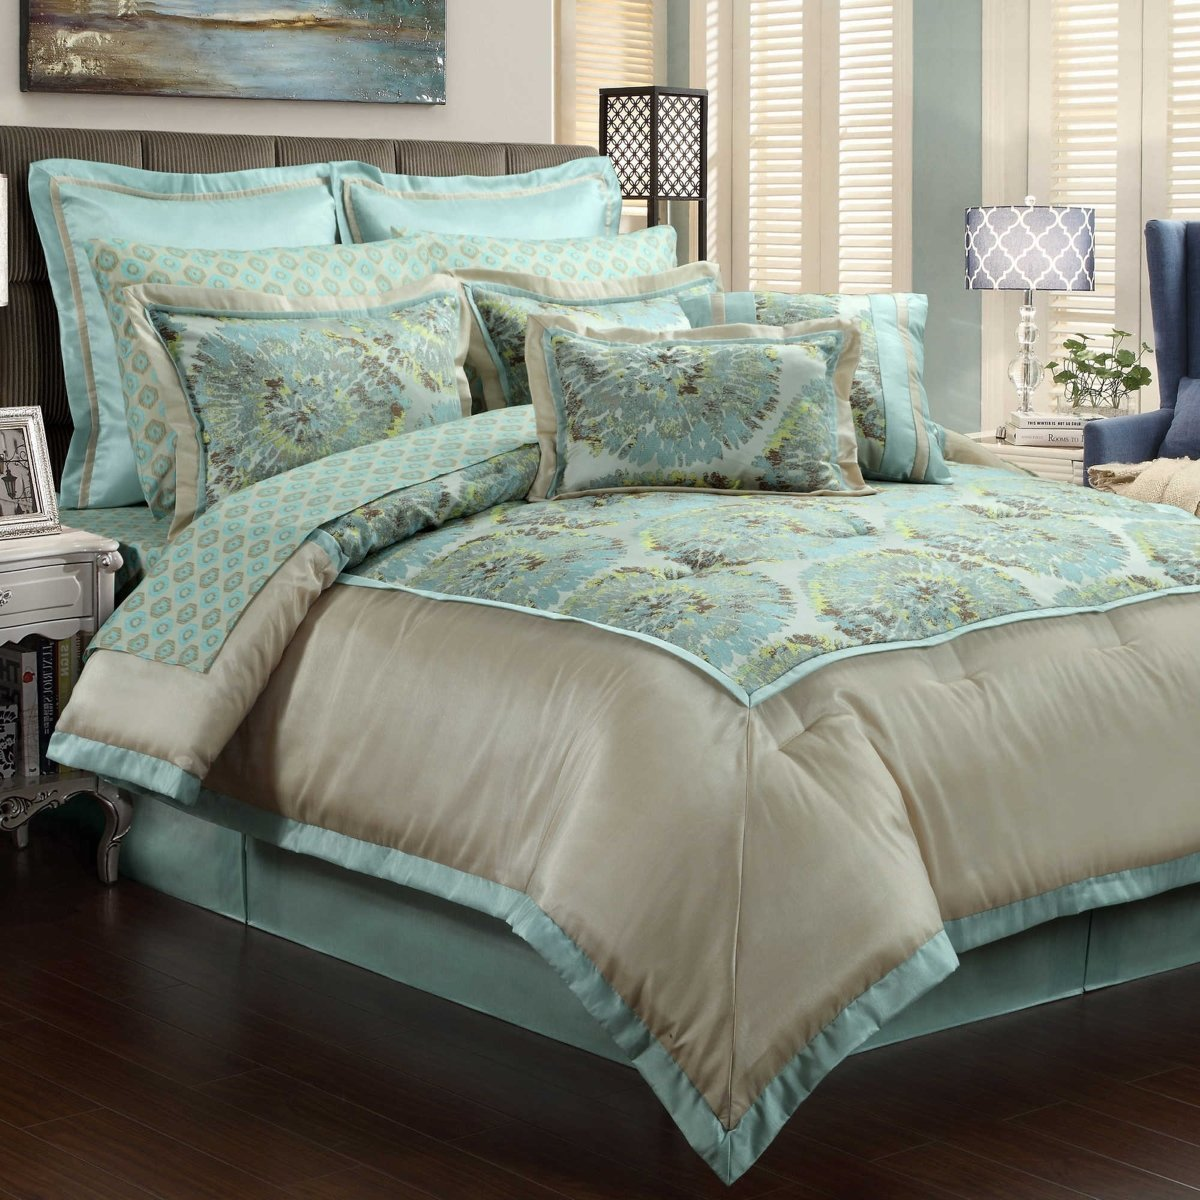 Queen Bedding Sets Freedom Of Life Like A Queen Home Furniture Design